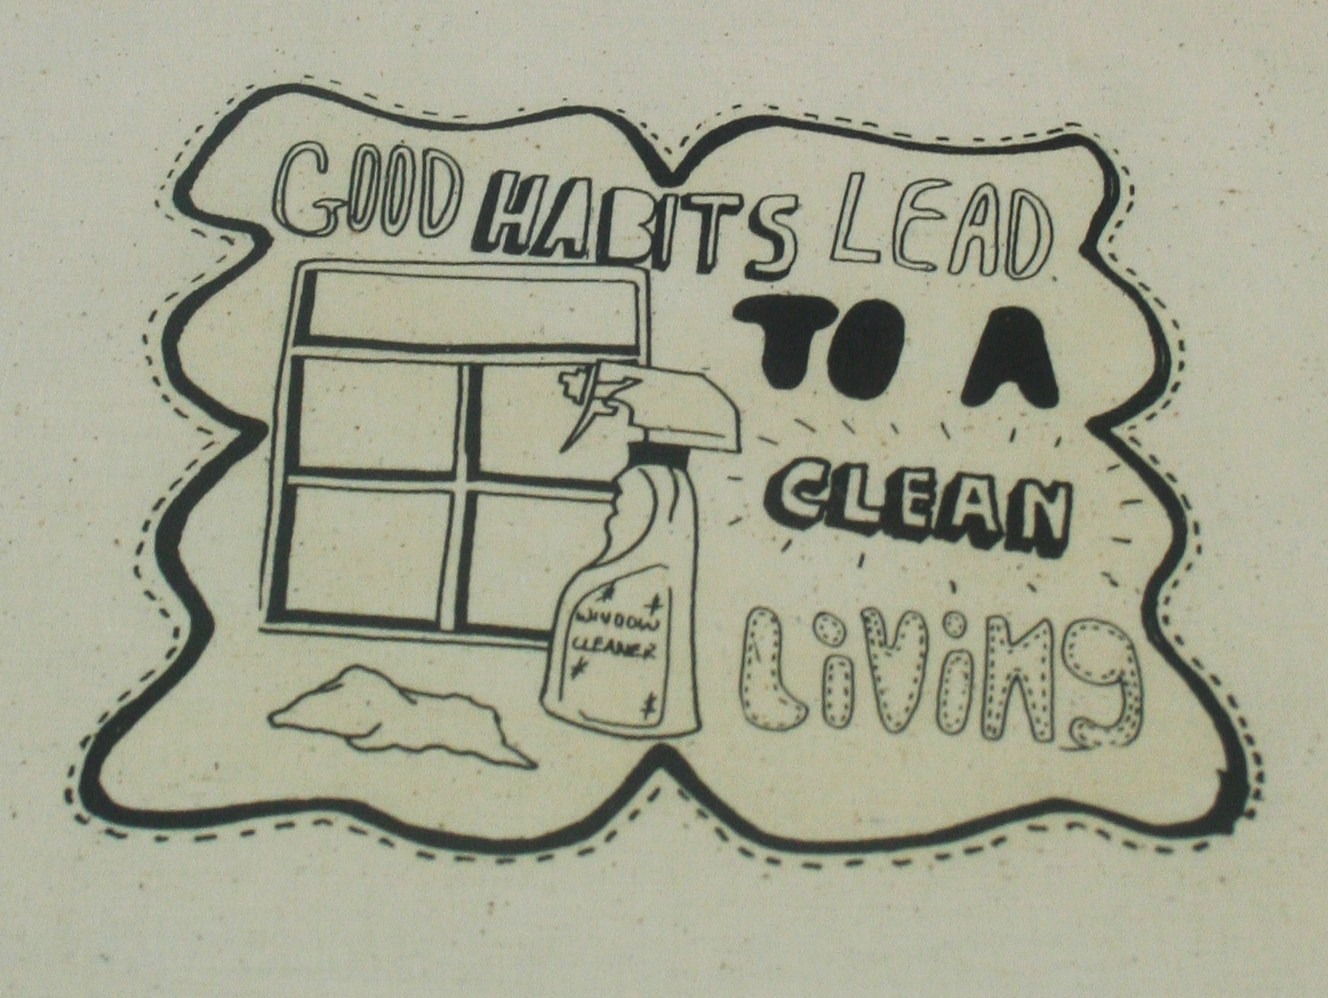 cleanliness slogans